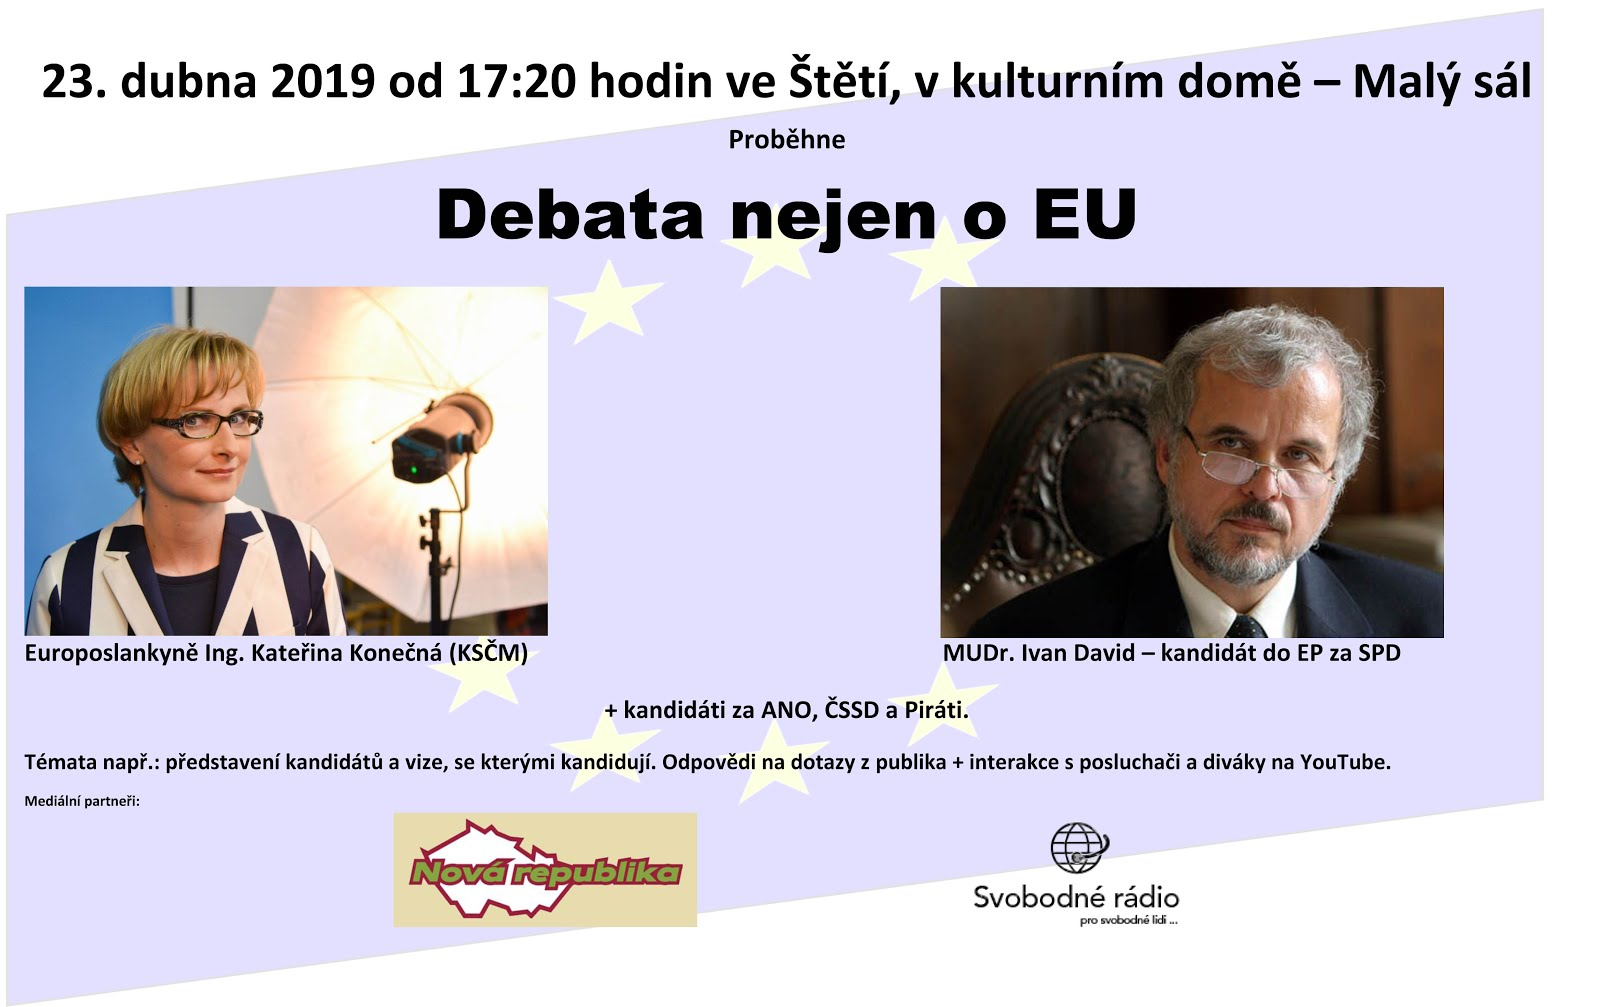 Debata nejen o EU